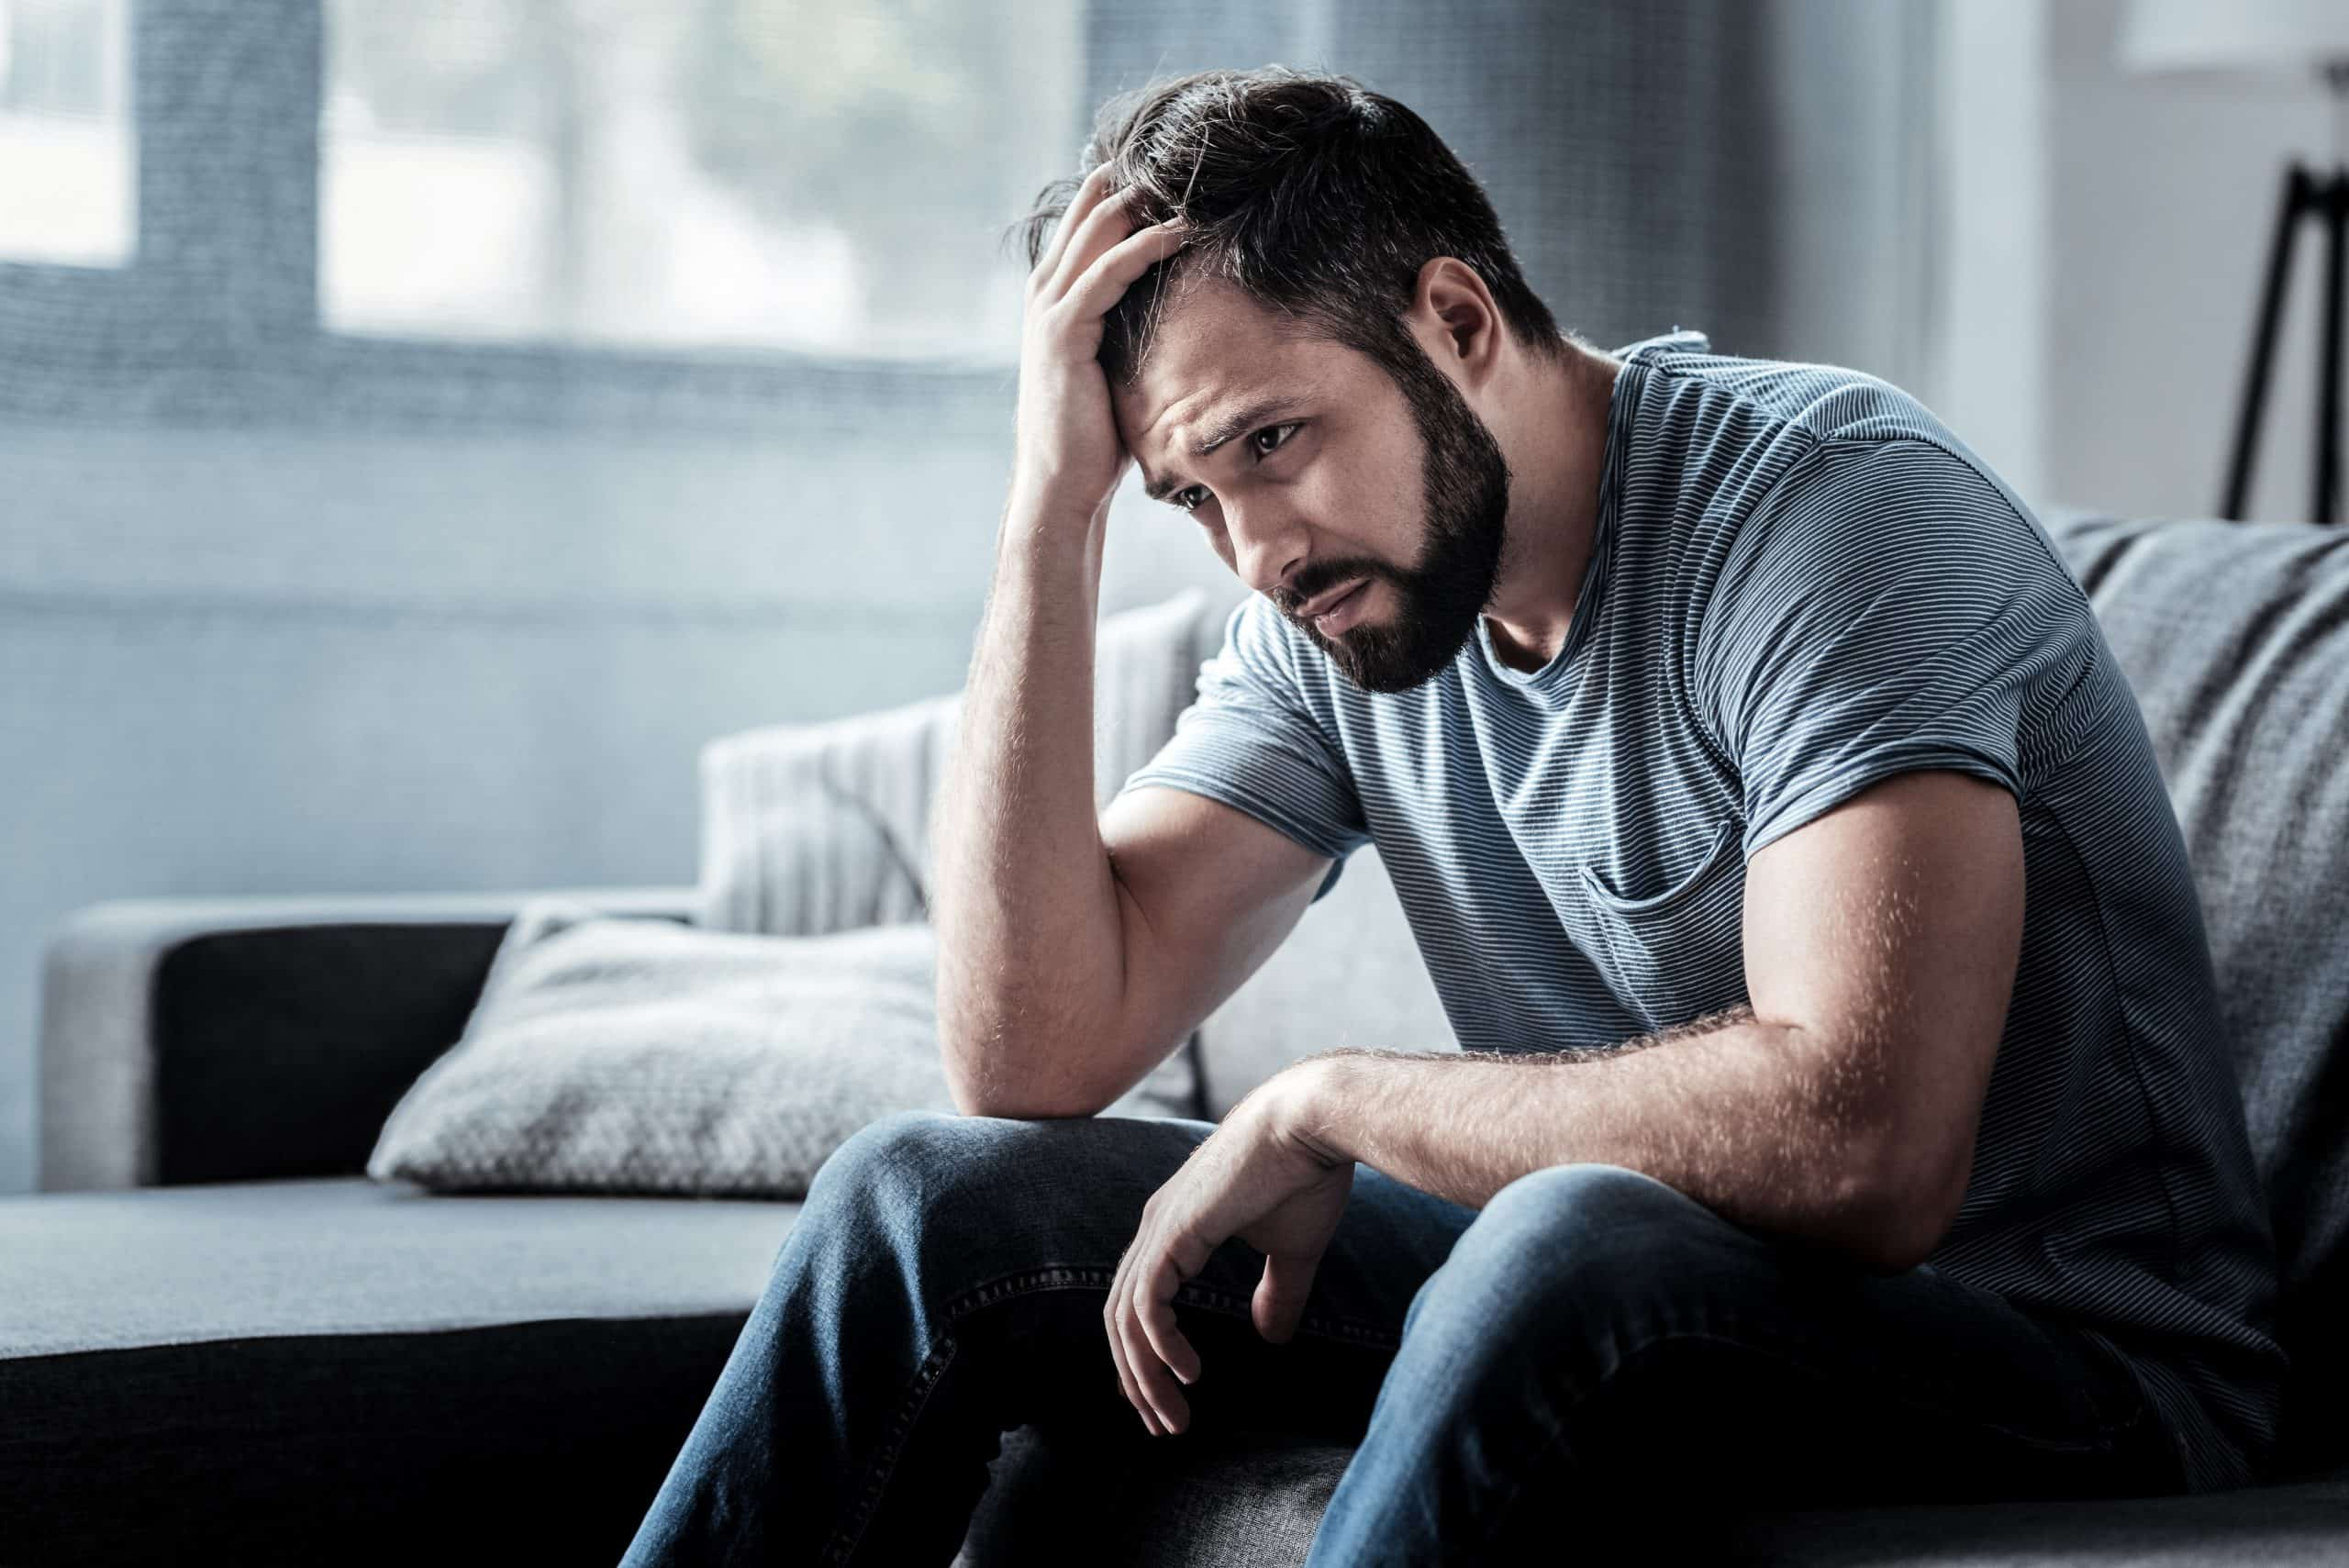 Sad unhappy man sitting on the sofa and holding his forehead